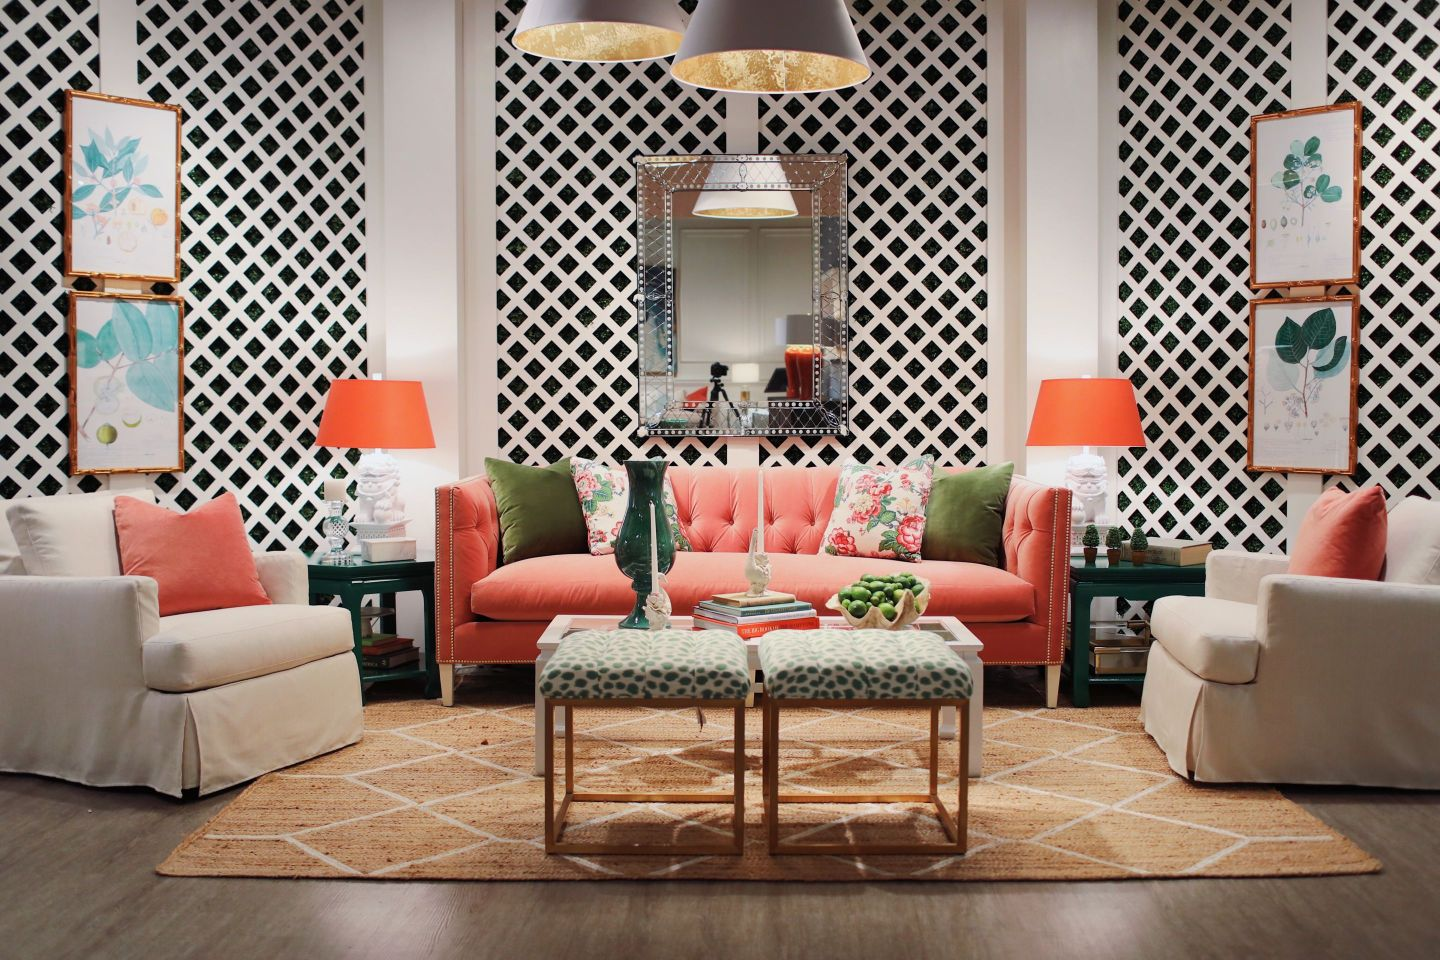 AKA Home Decor Inspiration: Pink and Green Style